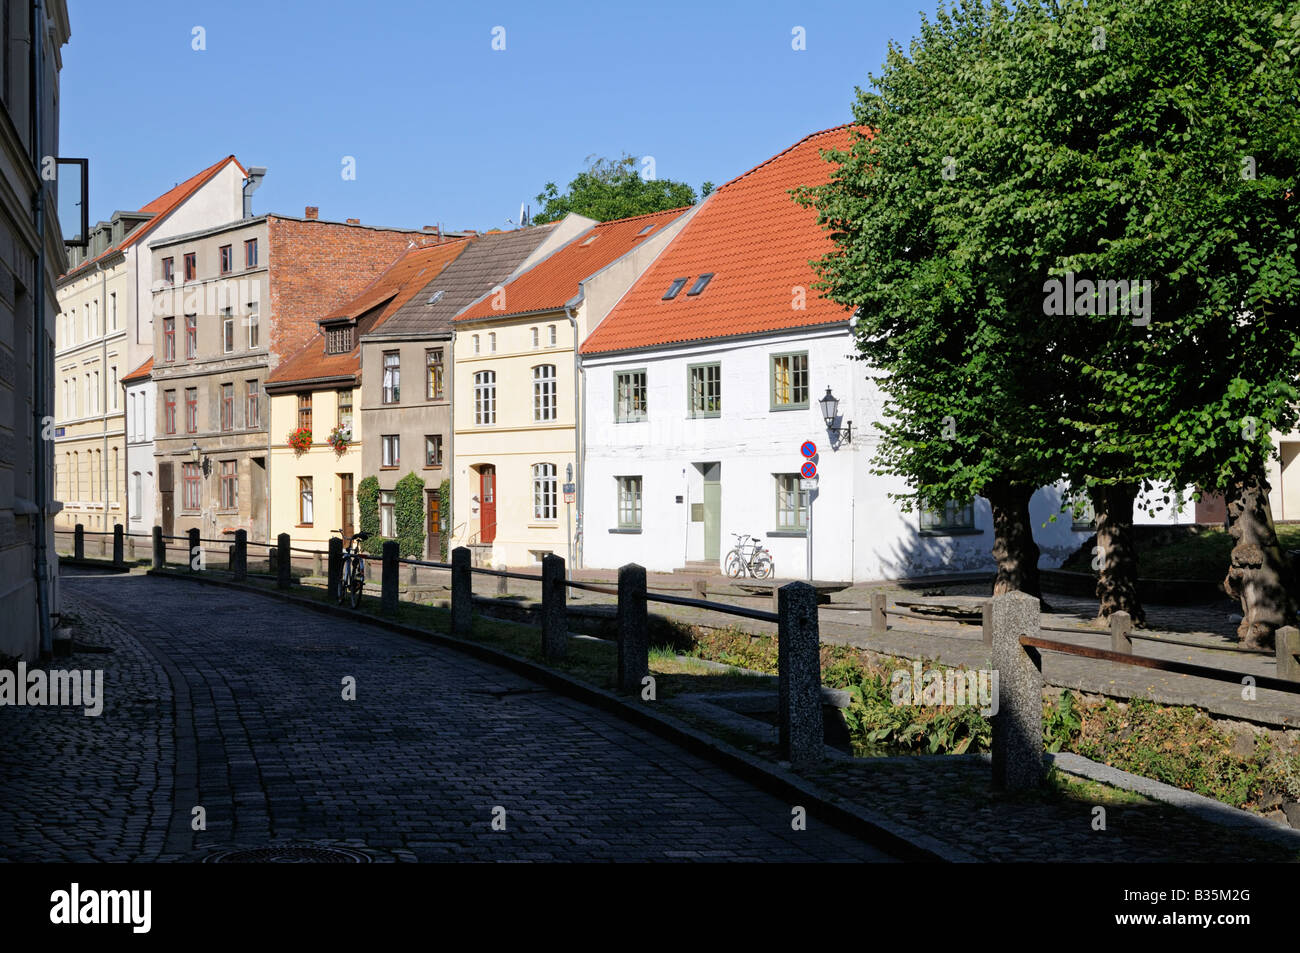 Straße namens Frische Grube in Wismar Deutschland Street named Frische Grube in Wismar Germany - Stock Image